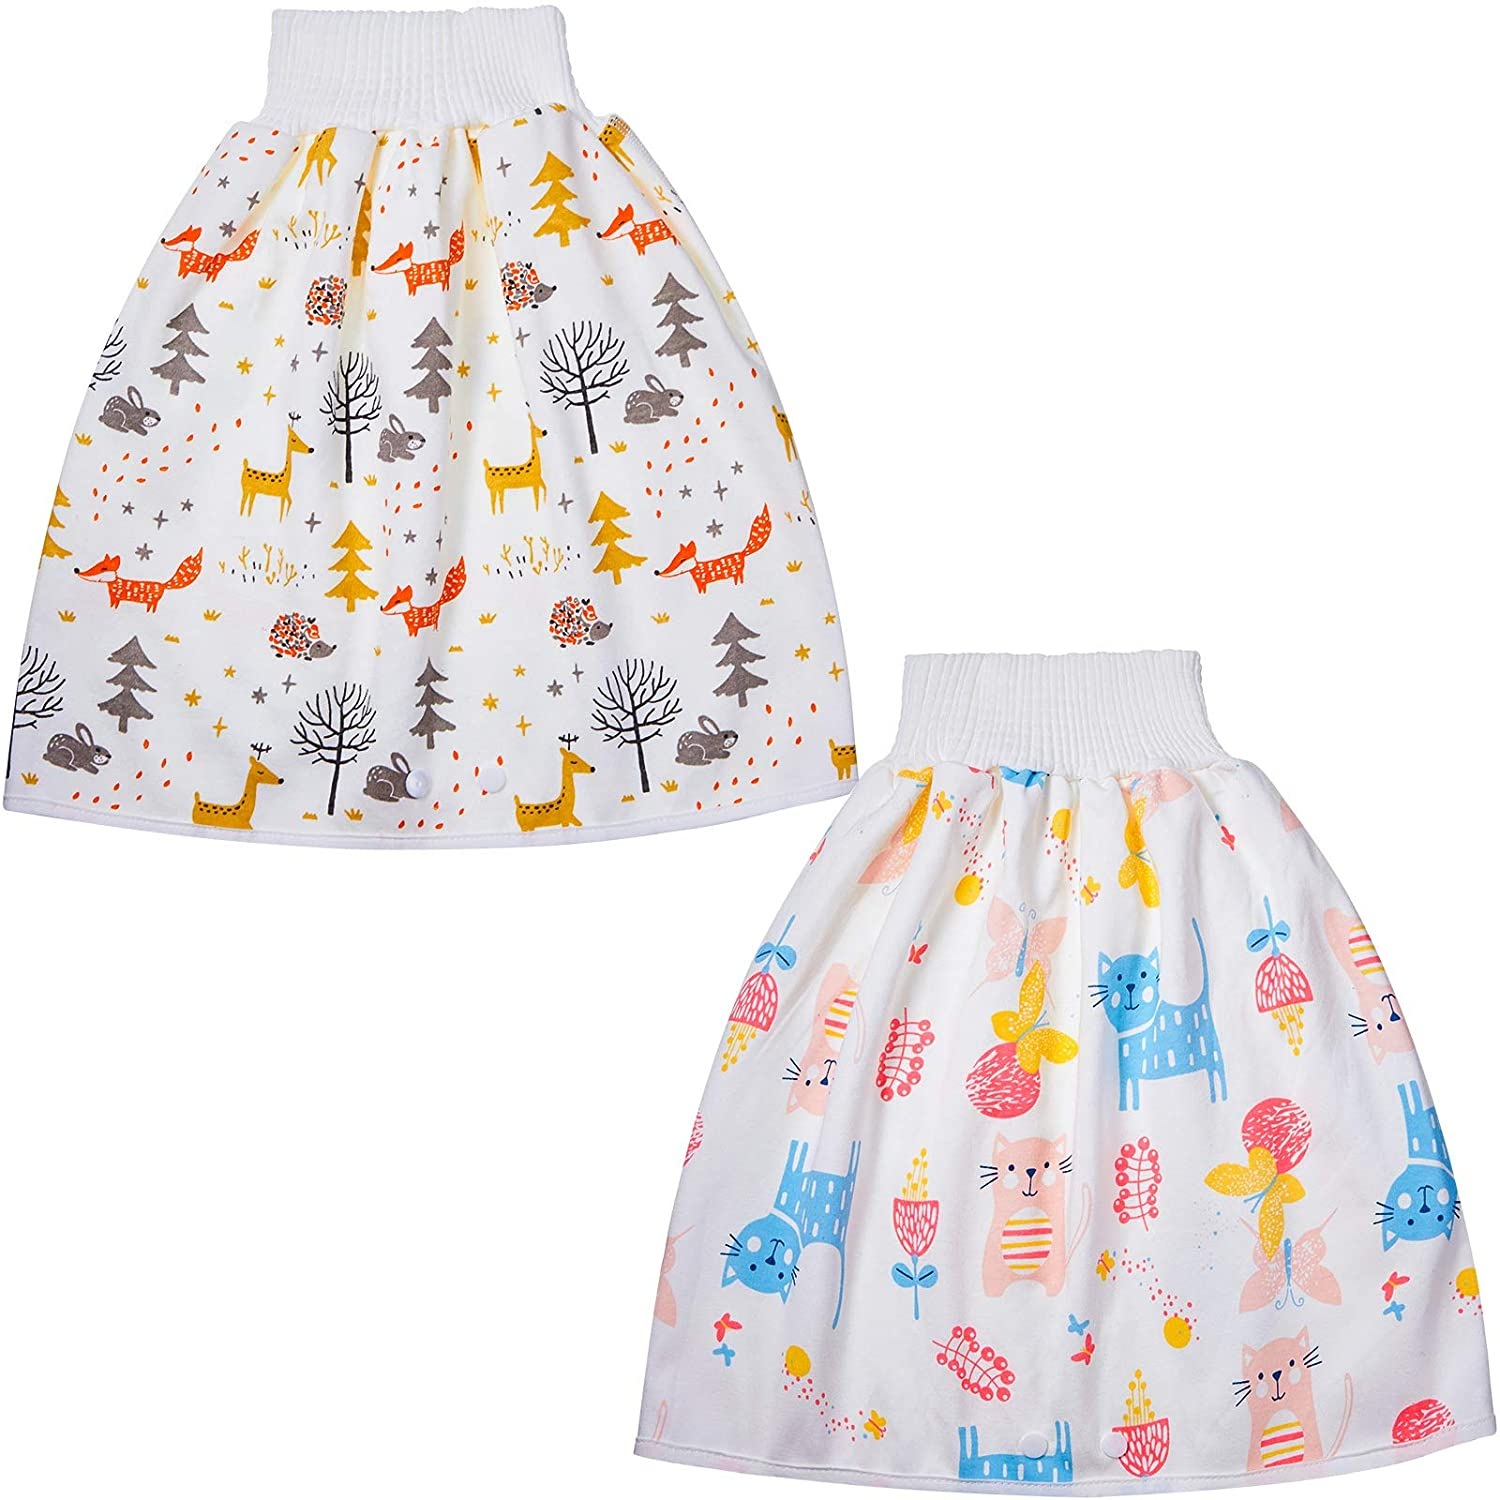 2 Pieces Baby Diaper Skirts Cotton Children Diaper Skirt Shorts Baby Potty Training Skirts Kids Waterproof Clothes Diaper Skirt for Baby Boy Girl Night Time Sleeping